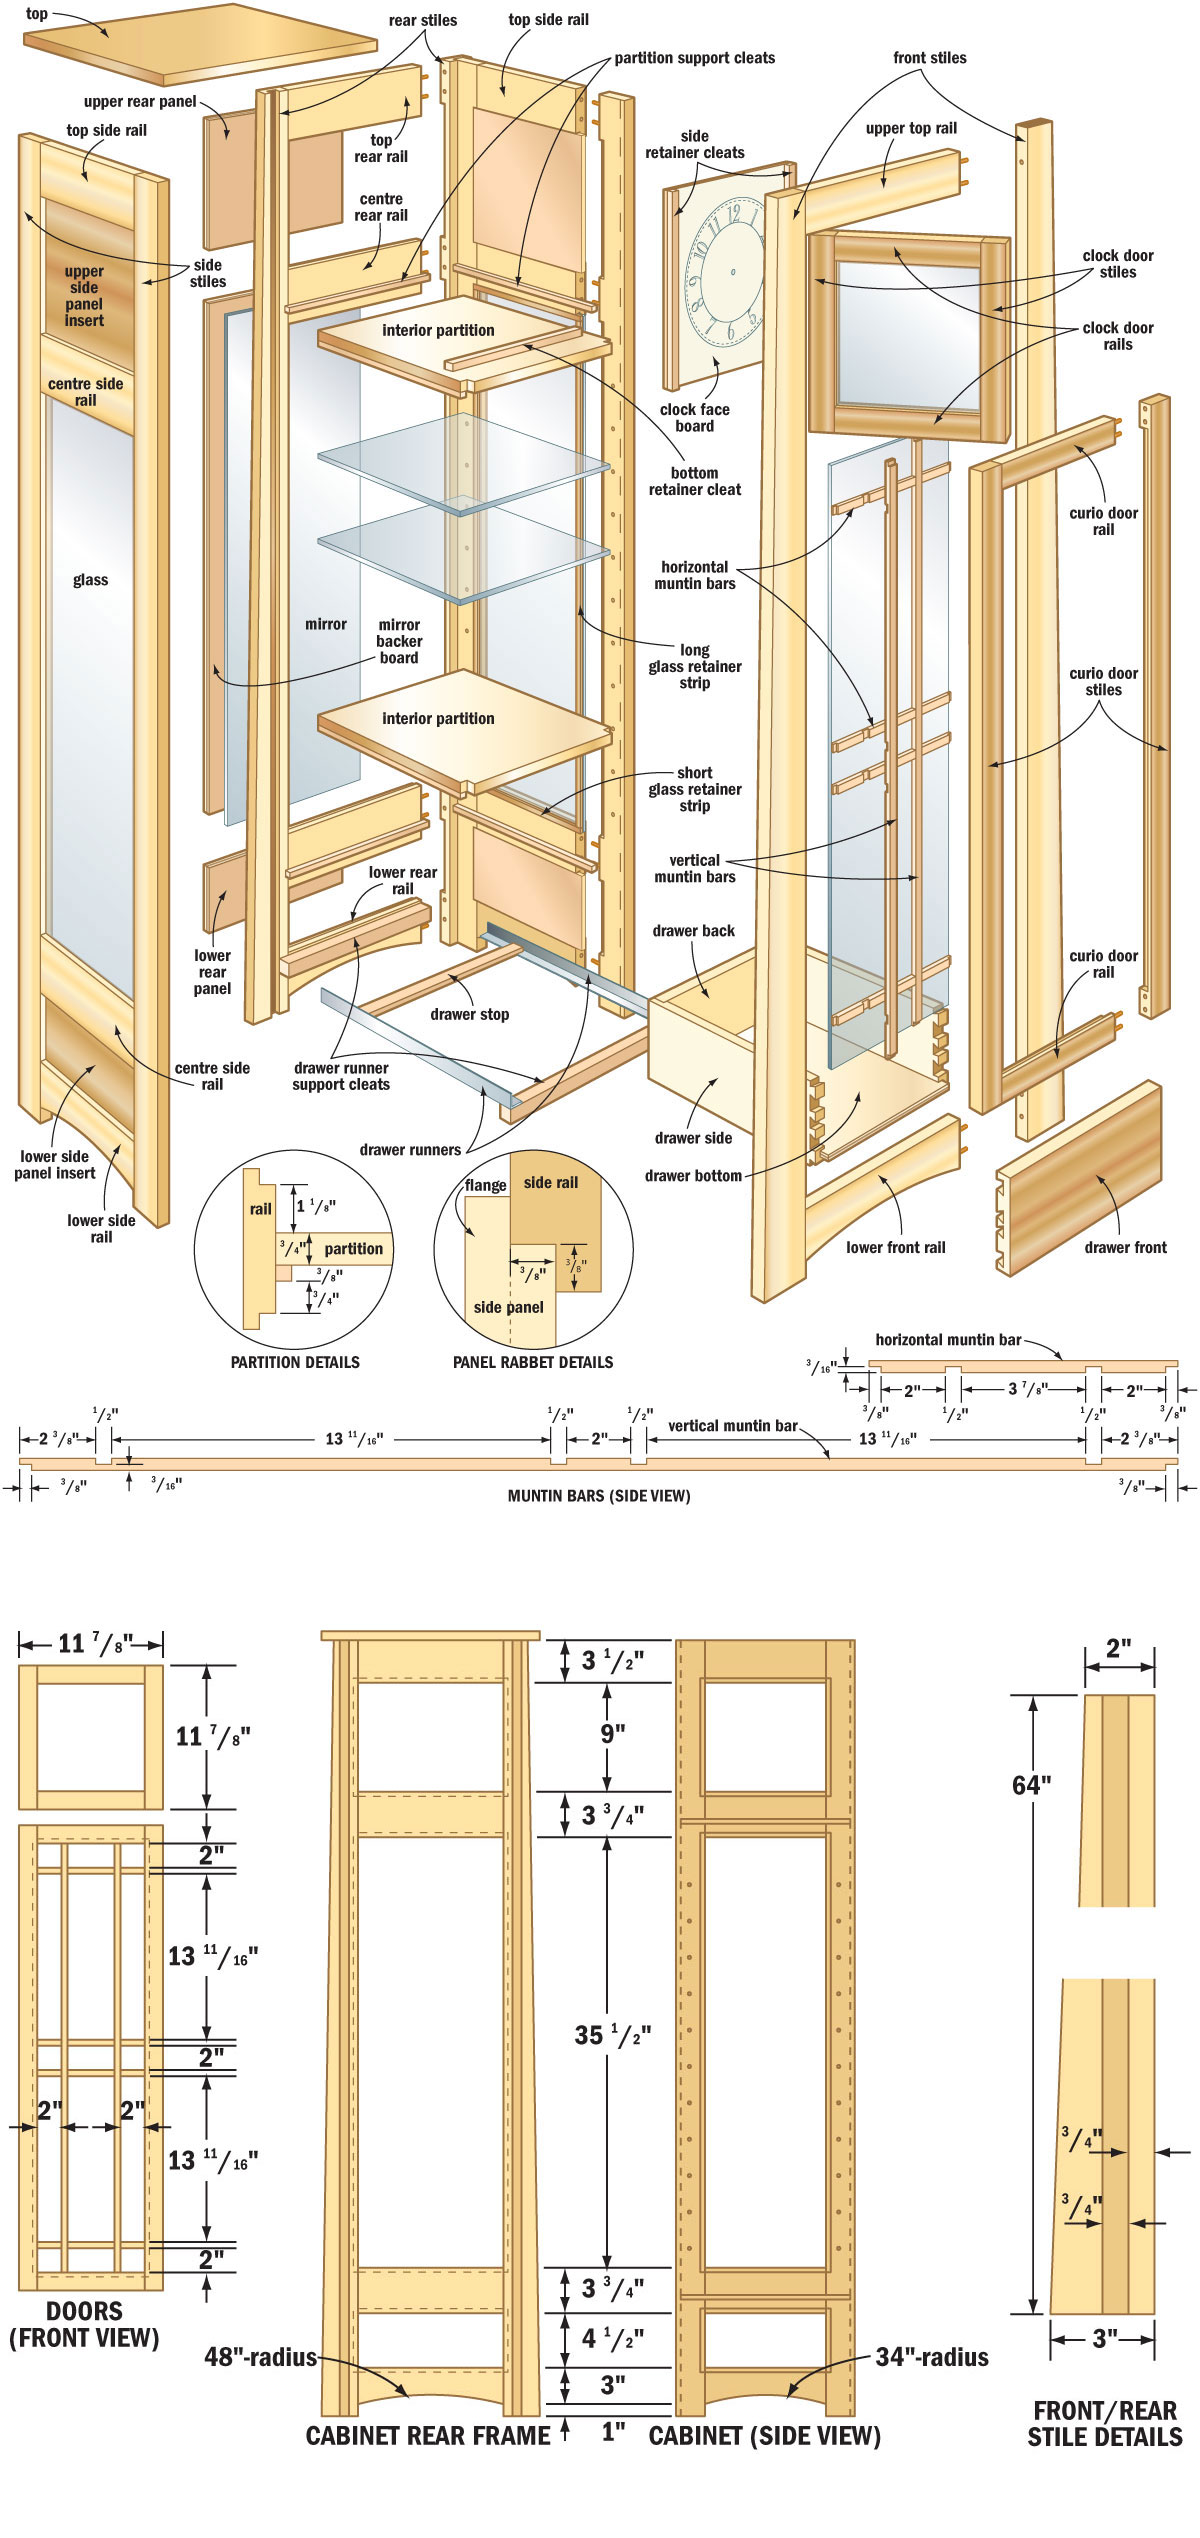 curio cabinet plans shelves Plans to build PDF Download rockland woodworking u2013 Woodworking PDF ...